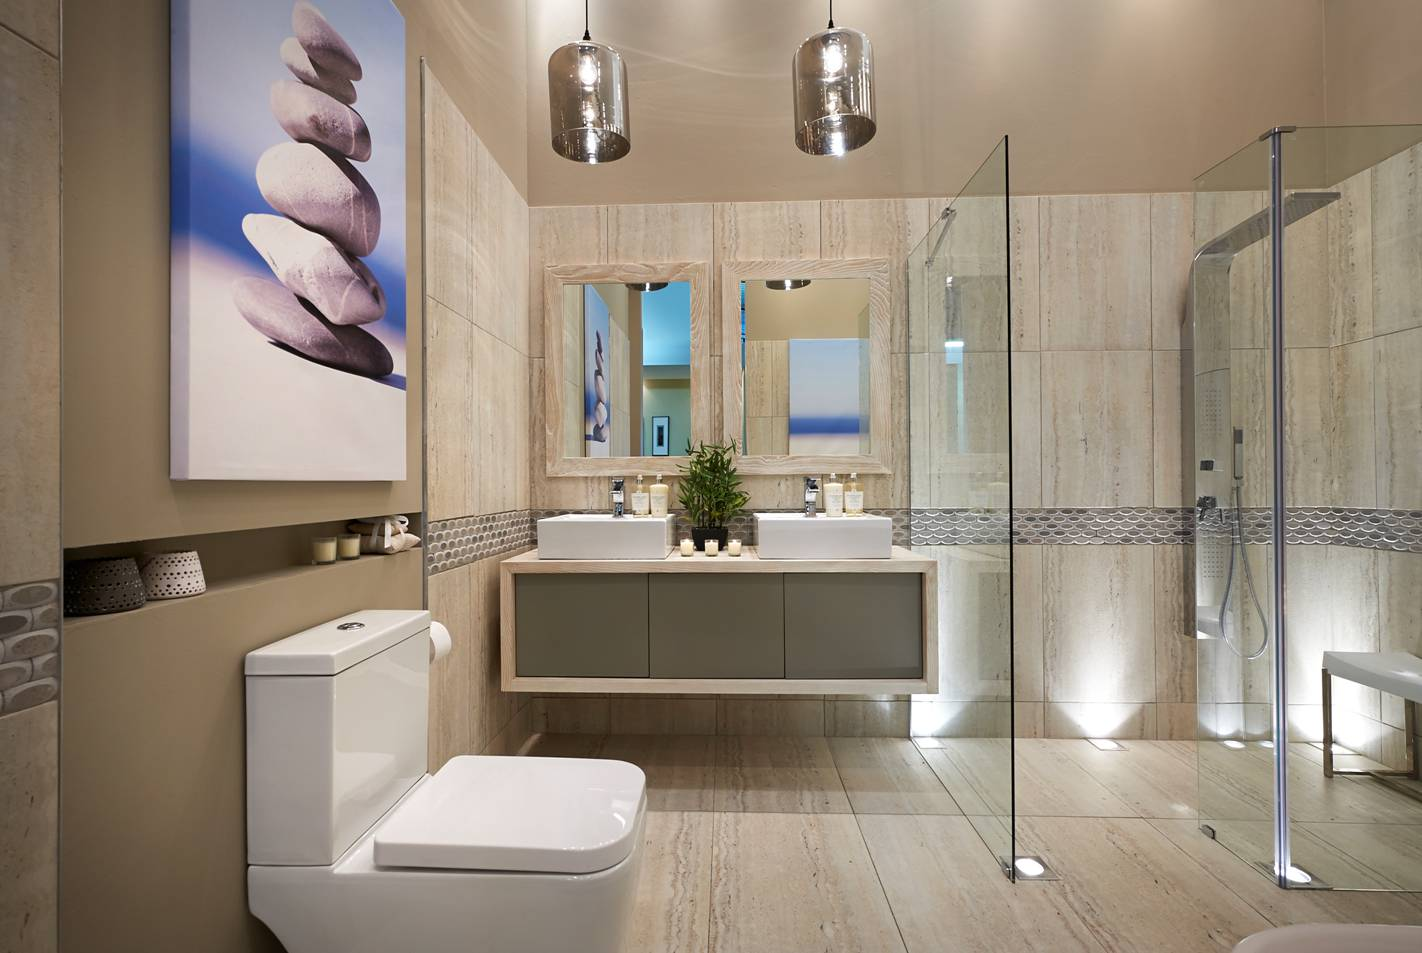 Top design tips for family bathrooms - Designer pictures of bathrooms ...